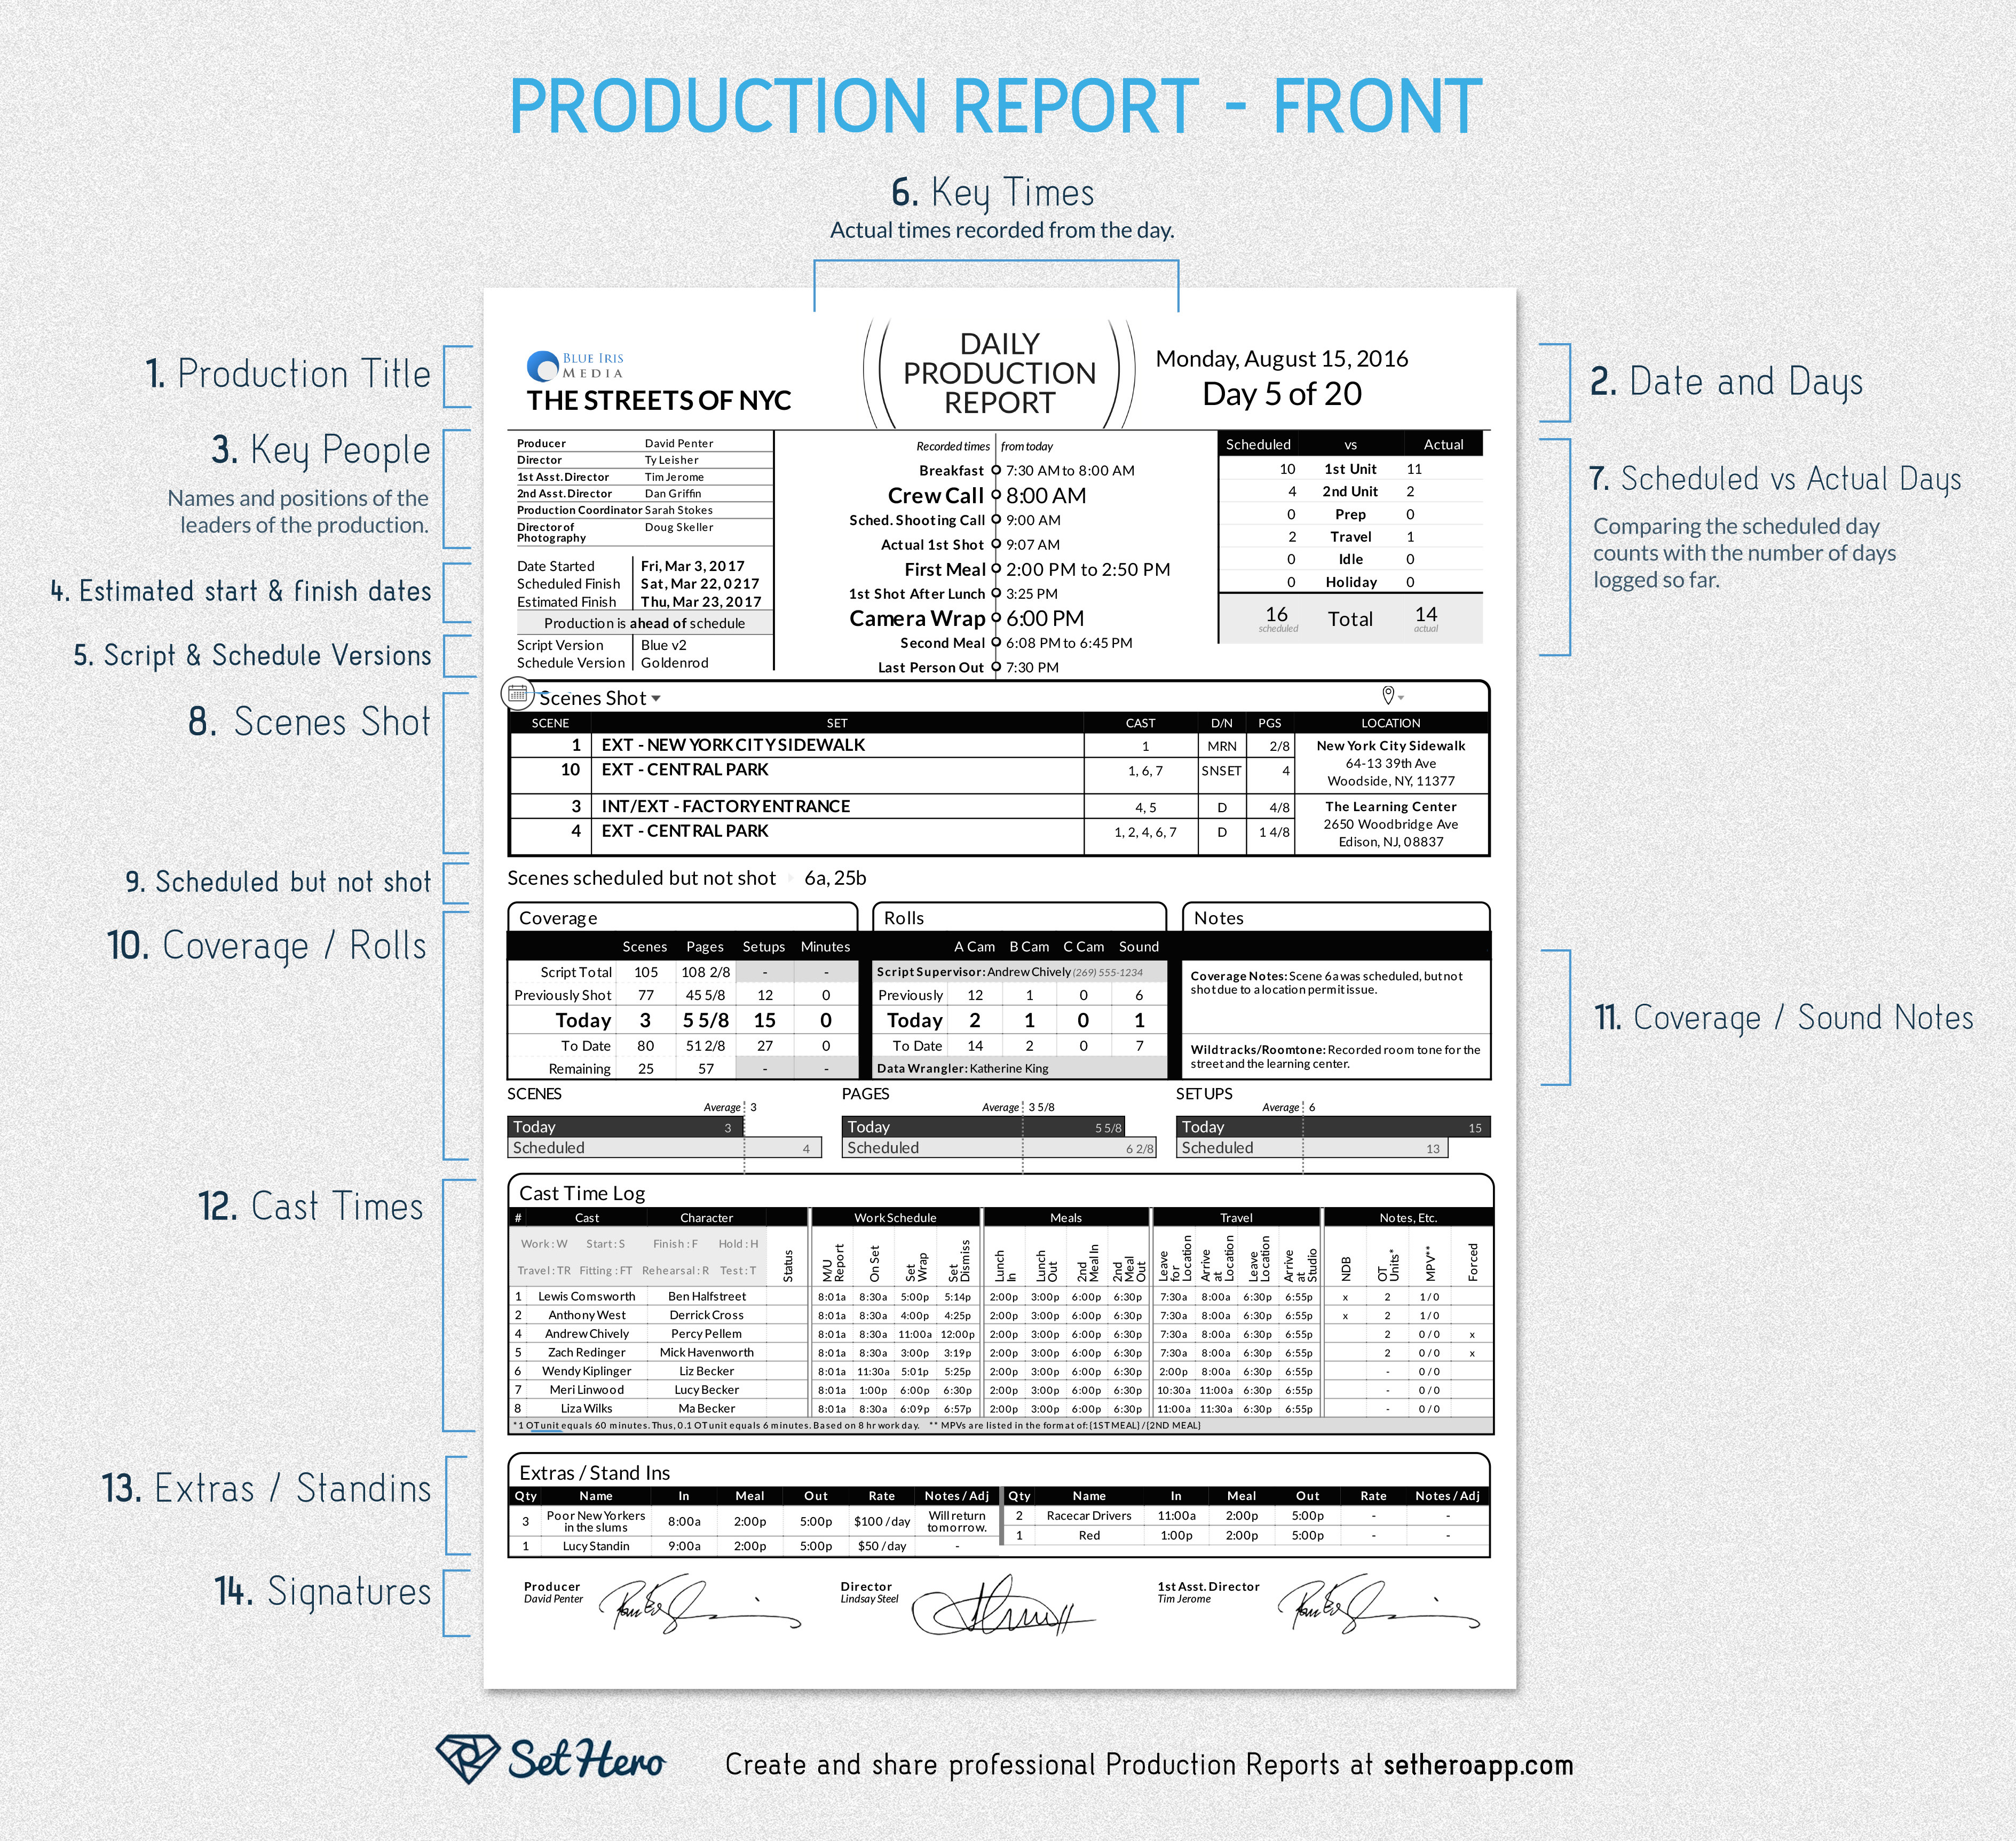 Monthly production reporting found in: Monthly Production Report Format For Manufacturing Industry